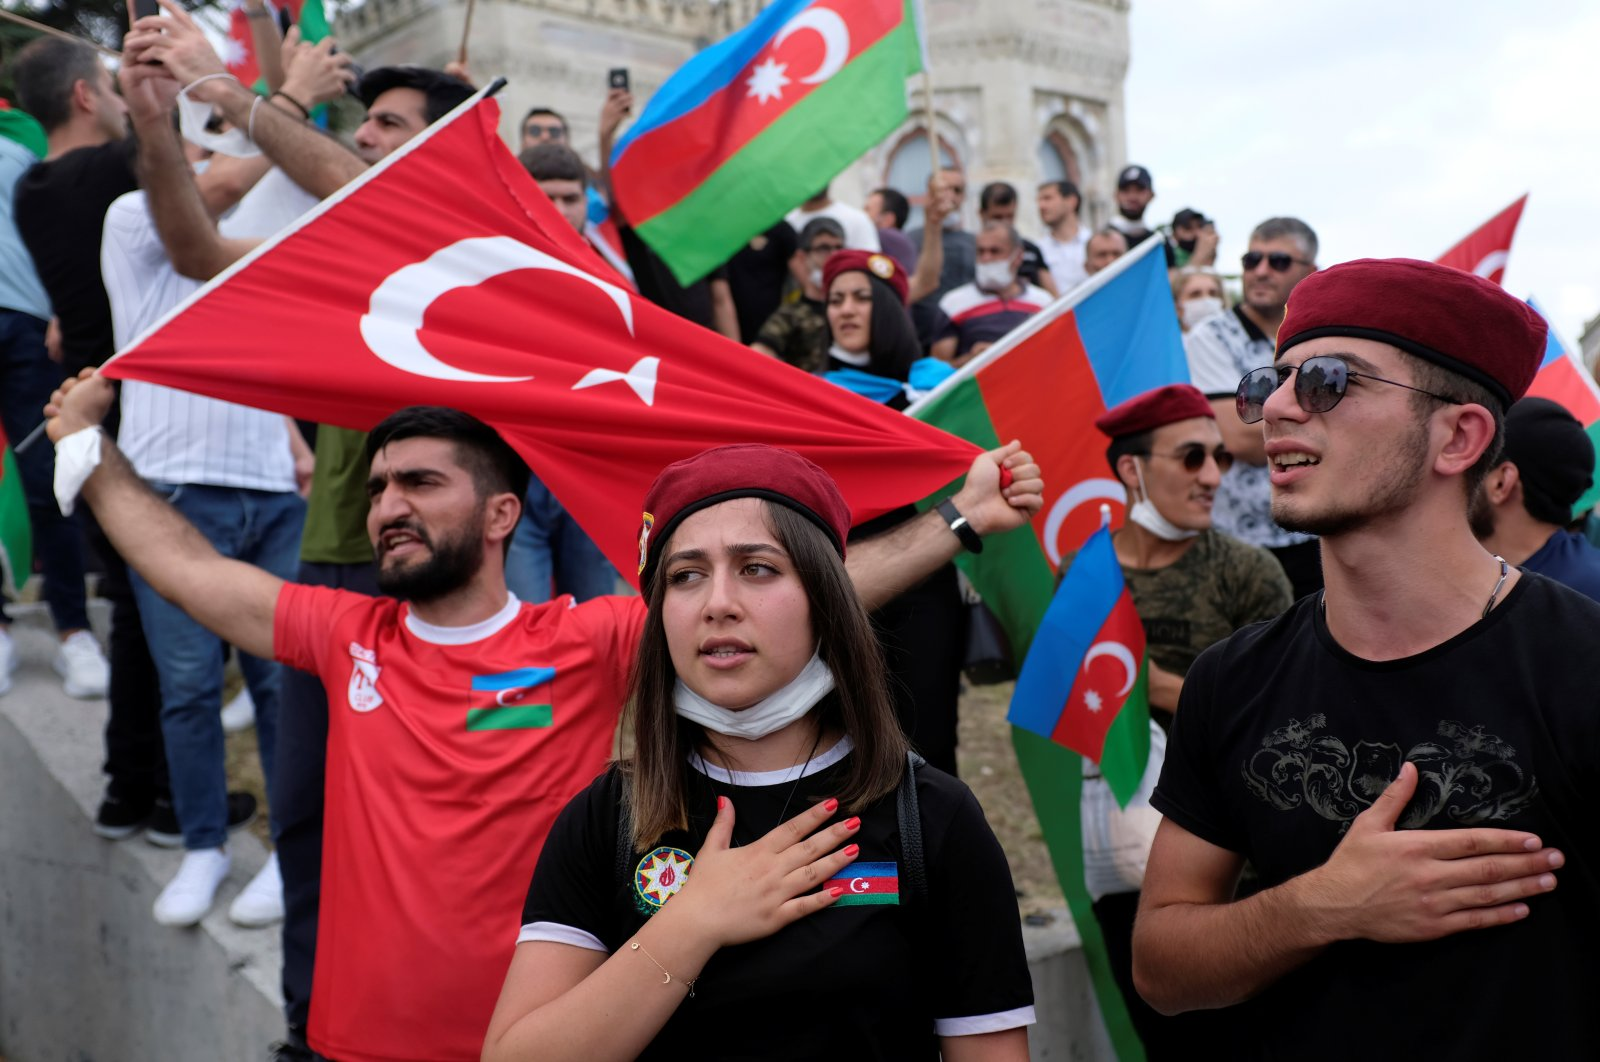 Azerbaijani youths living in Turkey sing Azerbaijan's national anthem during a protest following clashes between Azerbaijan and Armenia, in Istanbul, July 19, 2020. (REUTERS Photo)